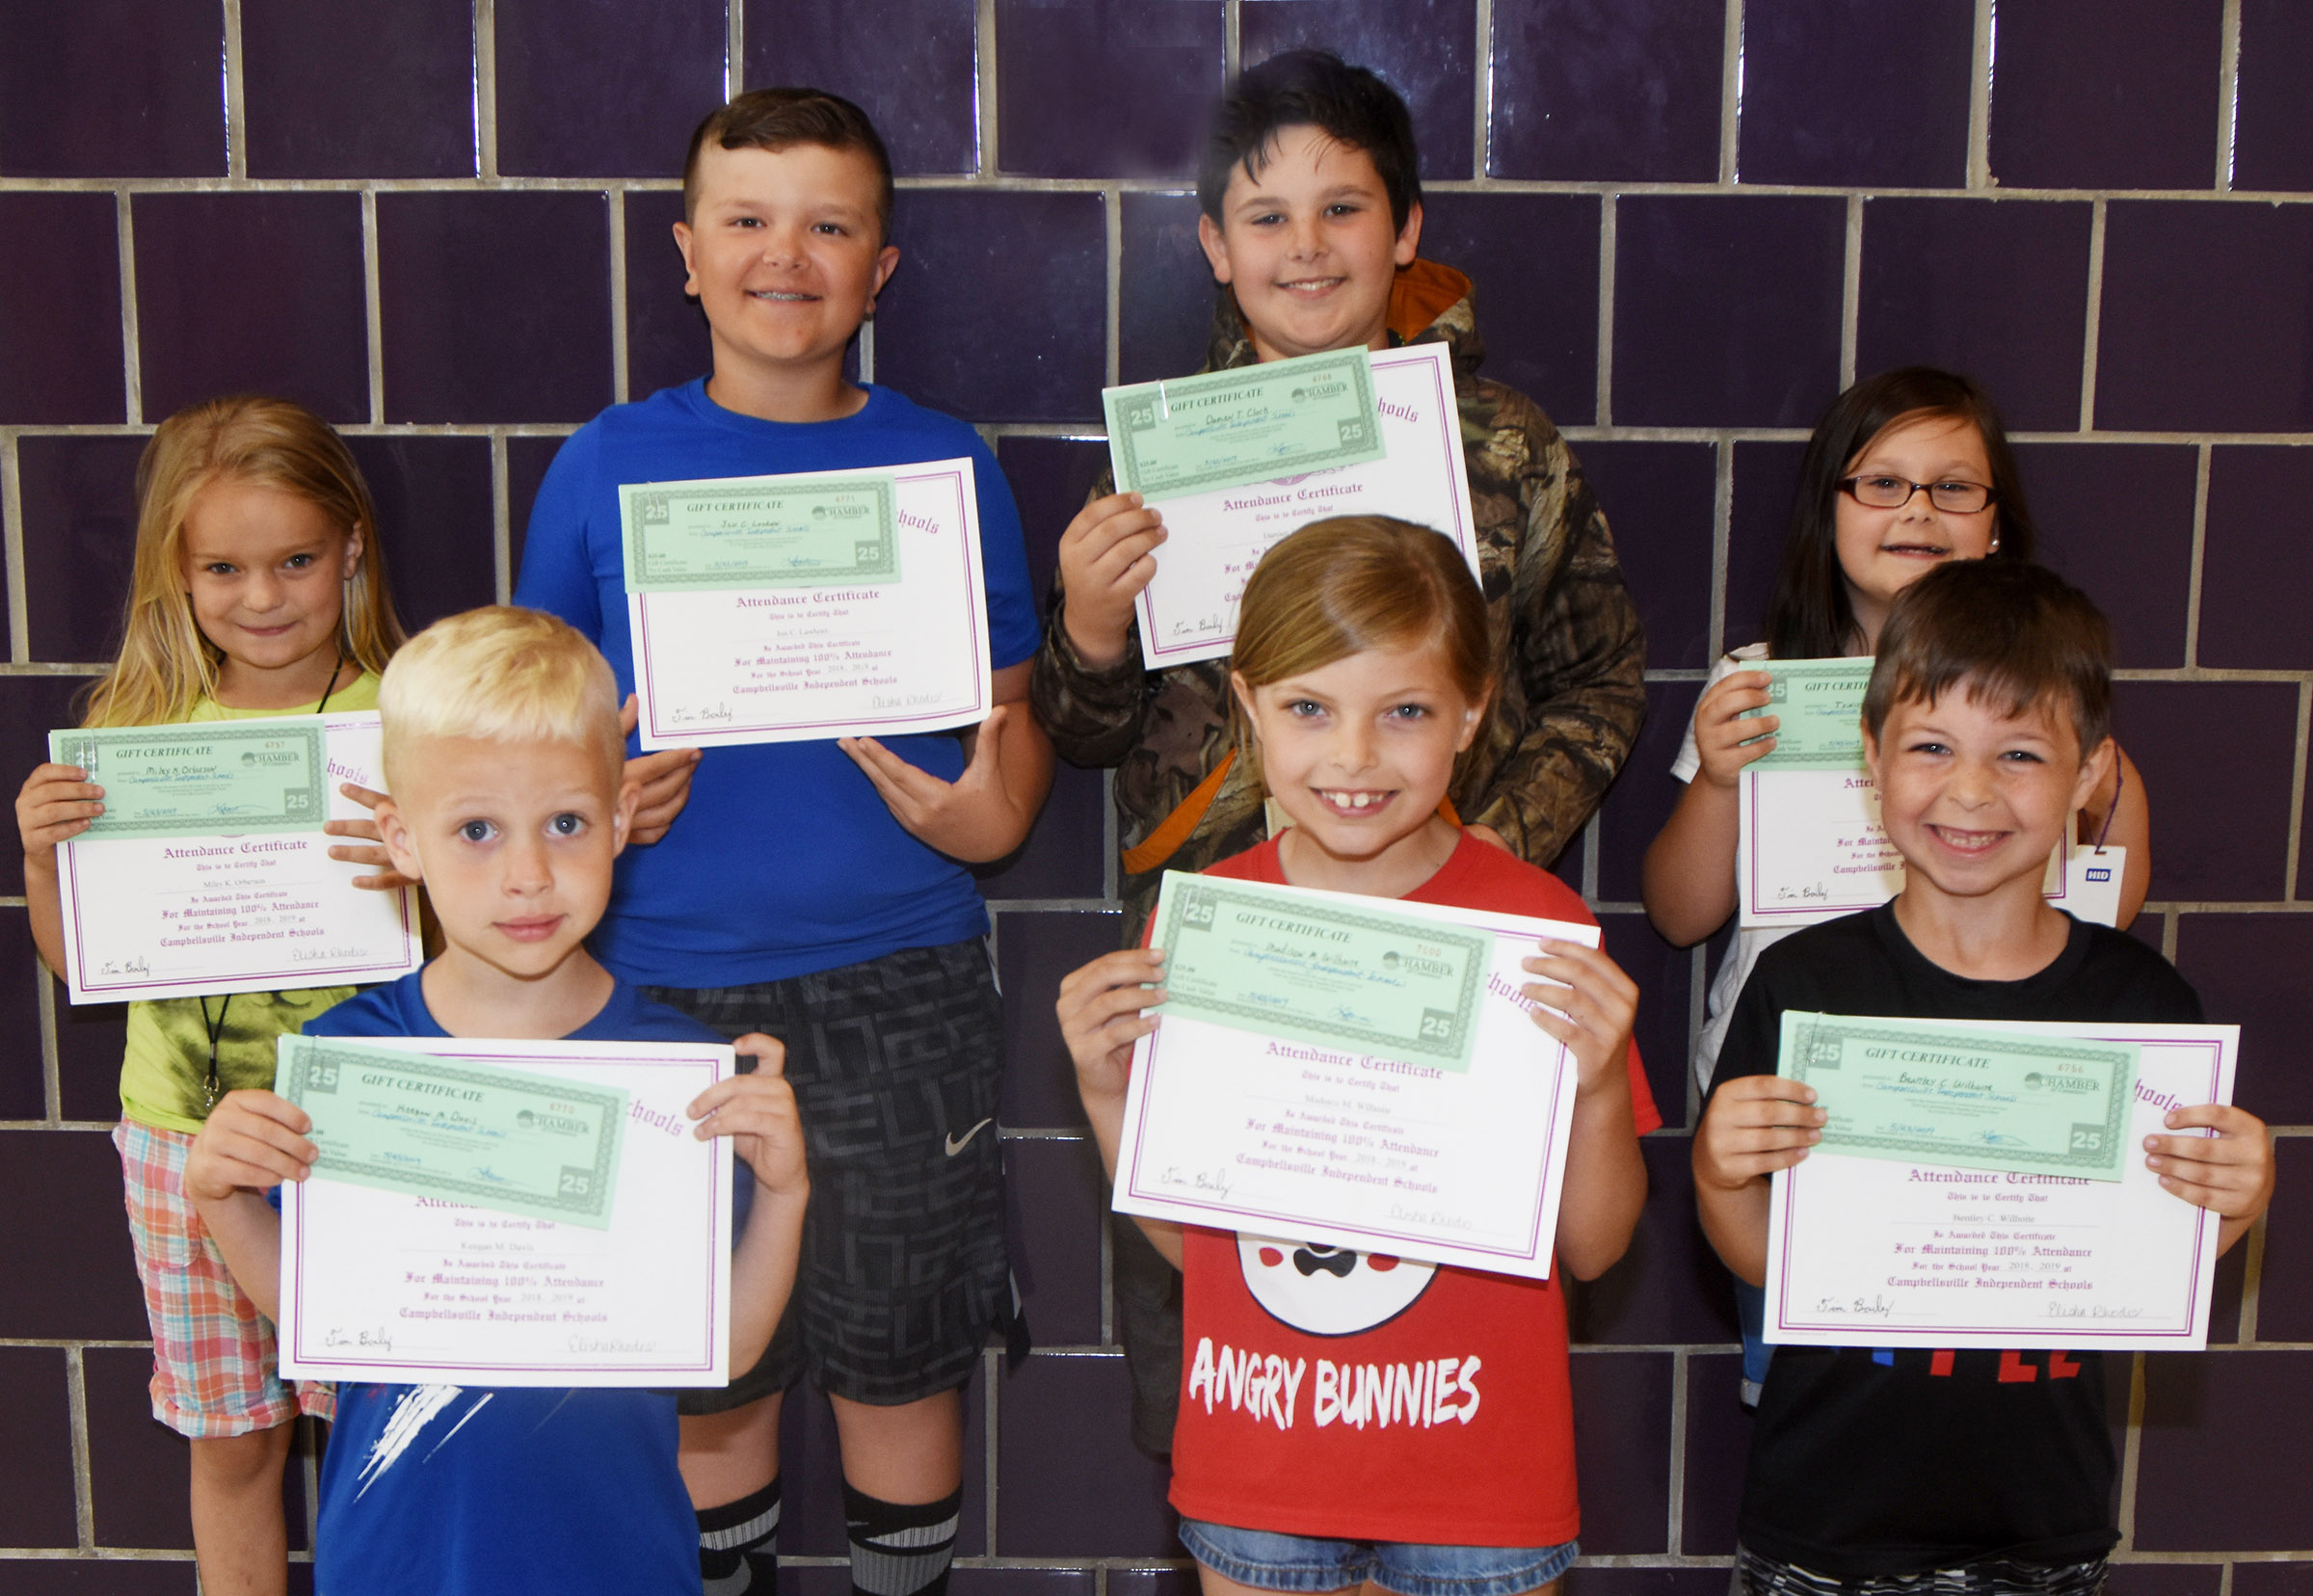 Campbellsville Elementary School students honored for having perfect attendance in the 2018-2019 school year are, from left, front, kindergartener Keegan Davis, second-grader Madison Wilhoite and first-grader Bentley Wilhoite. Back, second-grader Miley Orberson, fourth-graders Cayton Lawhorn and Damien Clark and second-grader Trinity Clark.